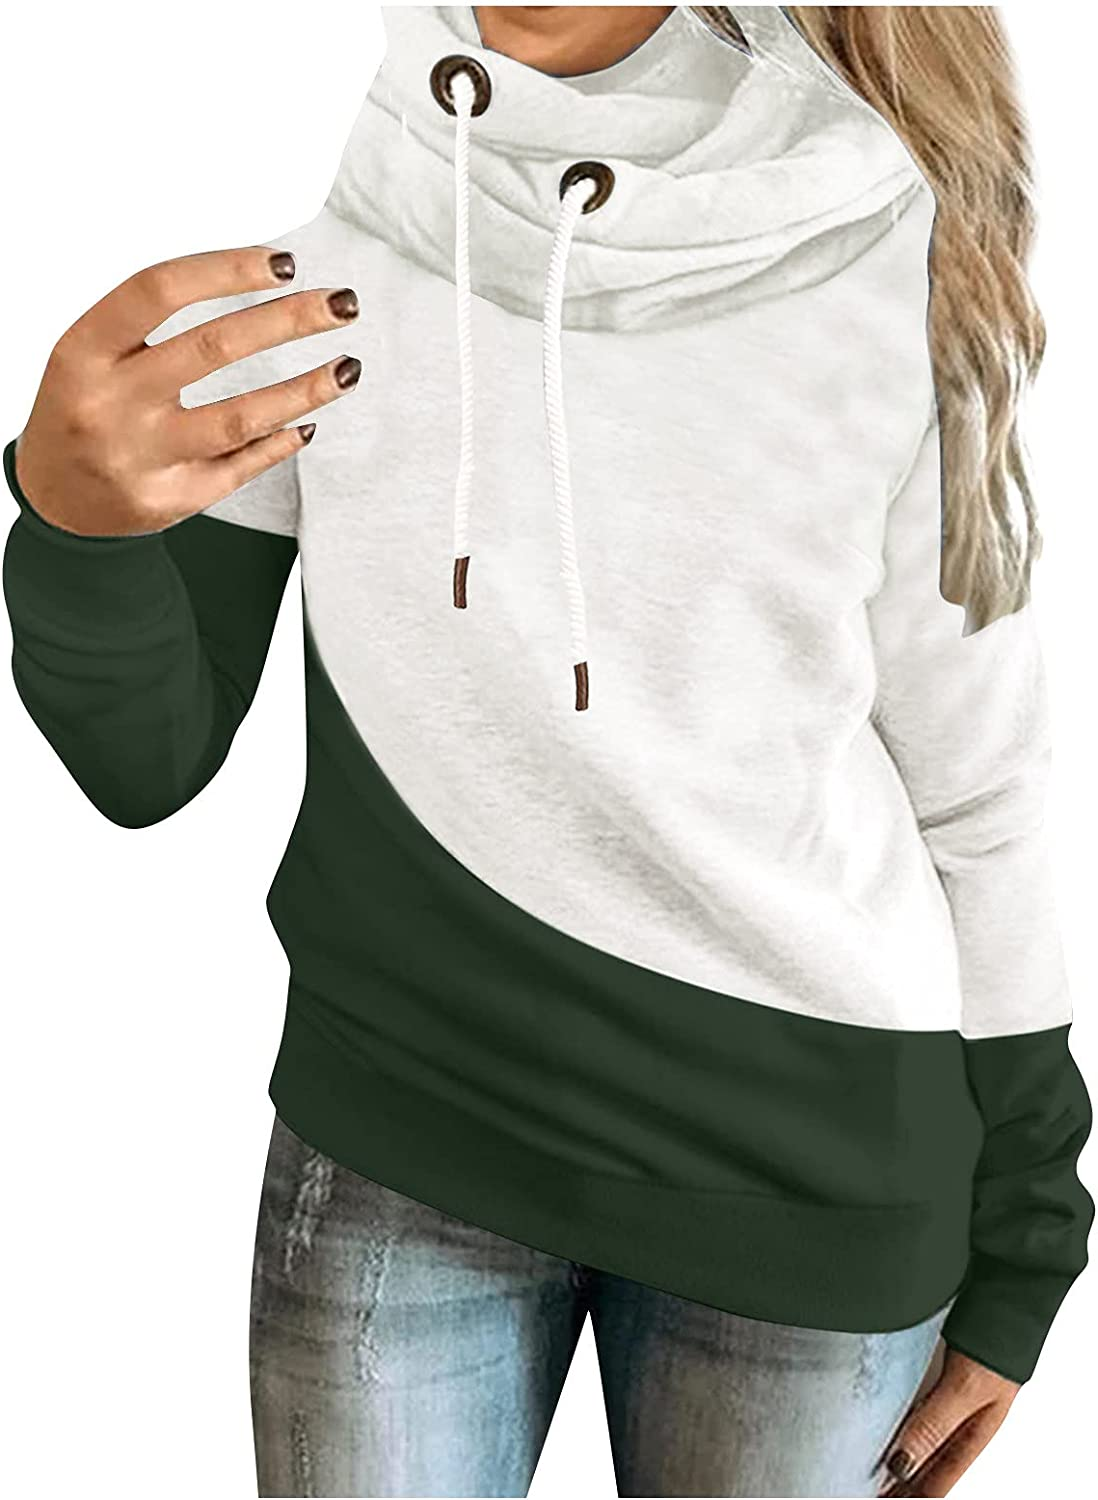 Cute Hoodies Women Sweaters Vintage Pullover Oversized Max 56% OFF Jackets Super sale C